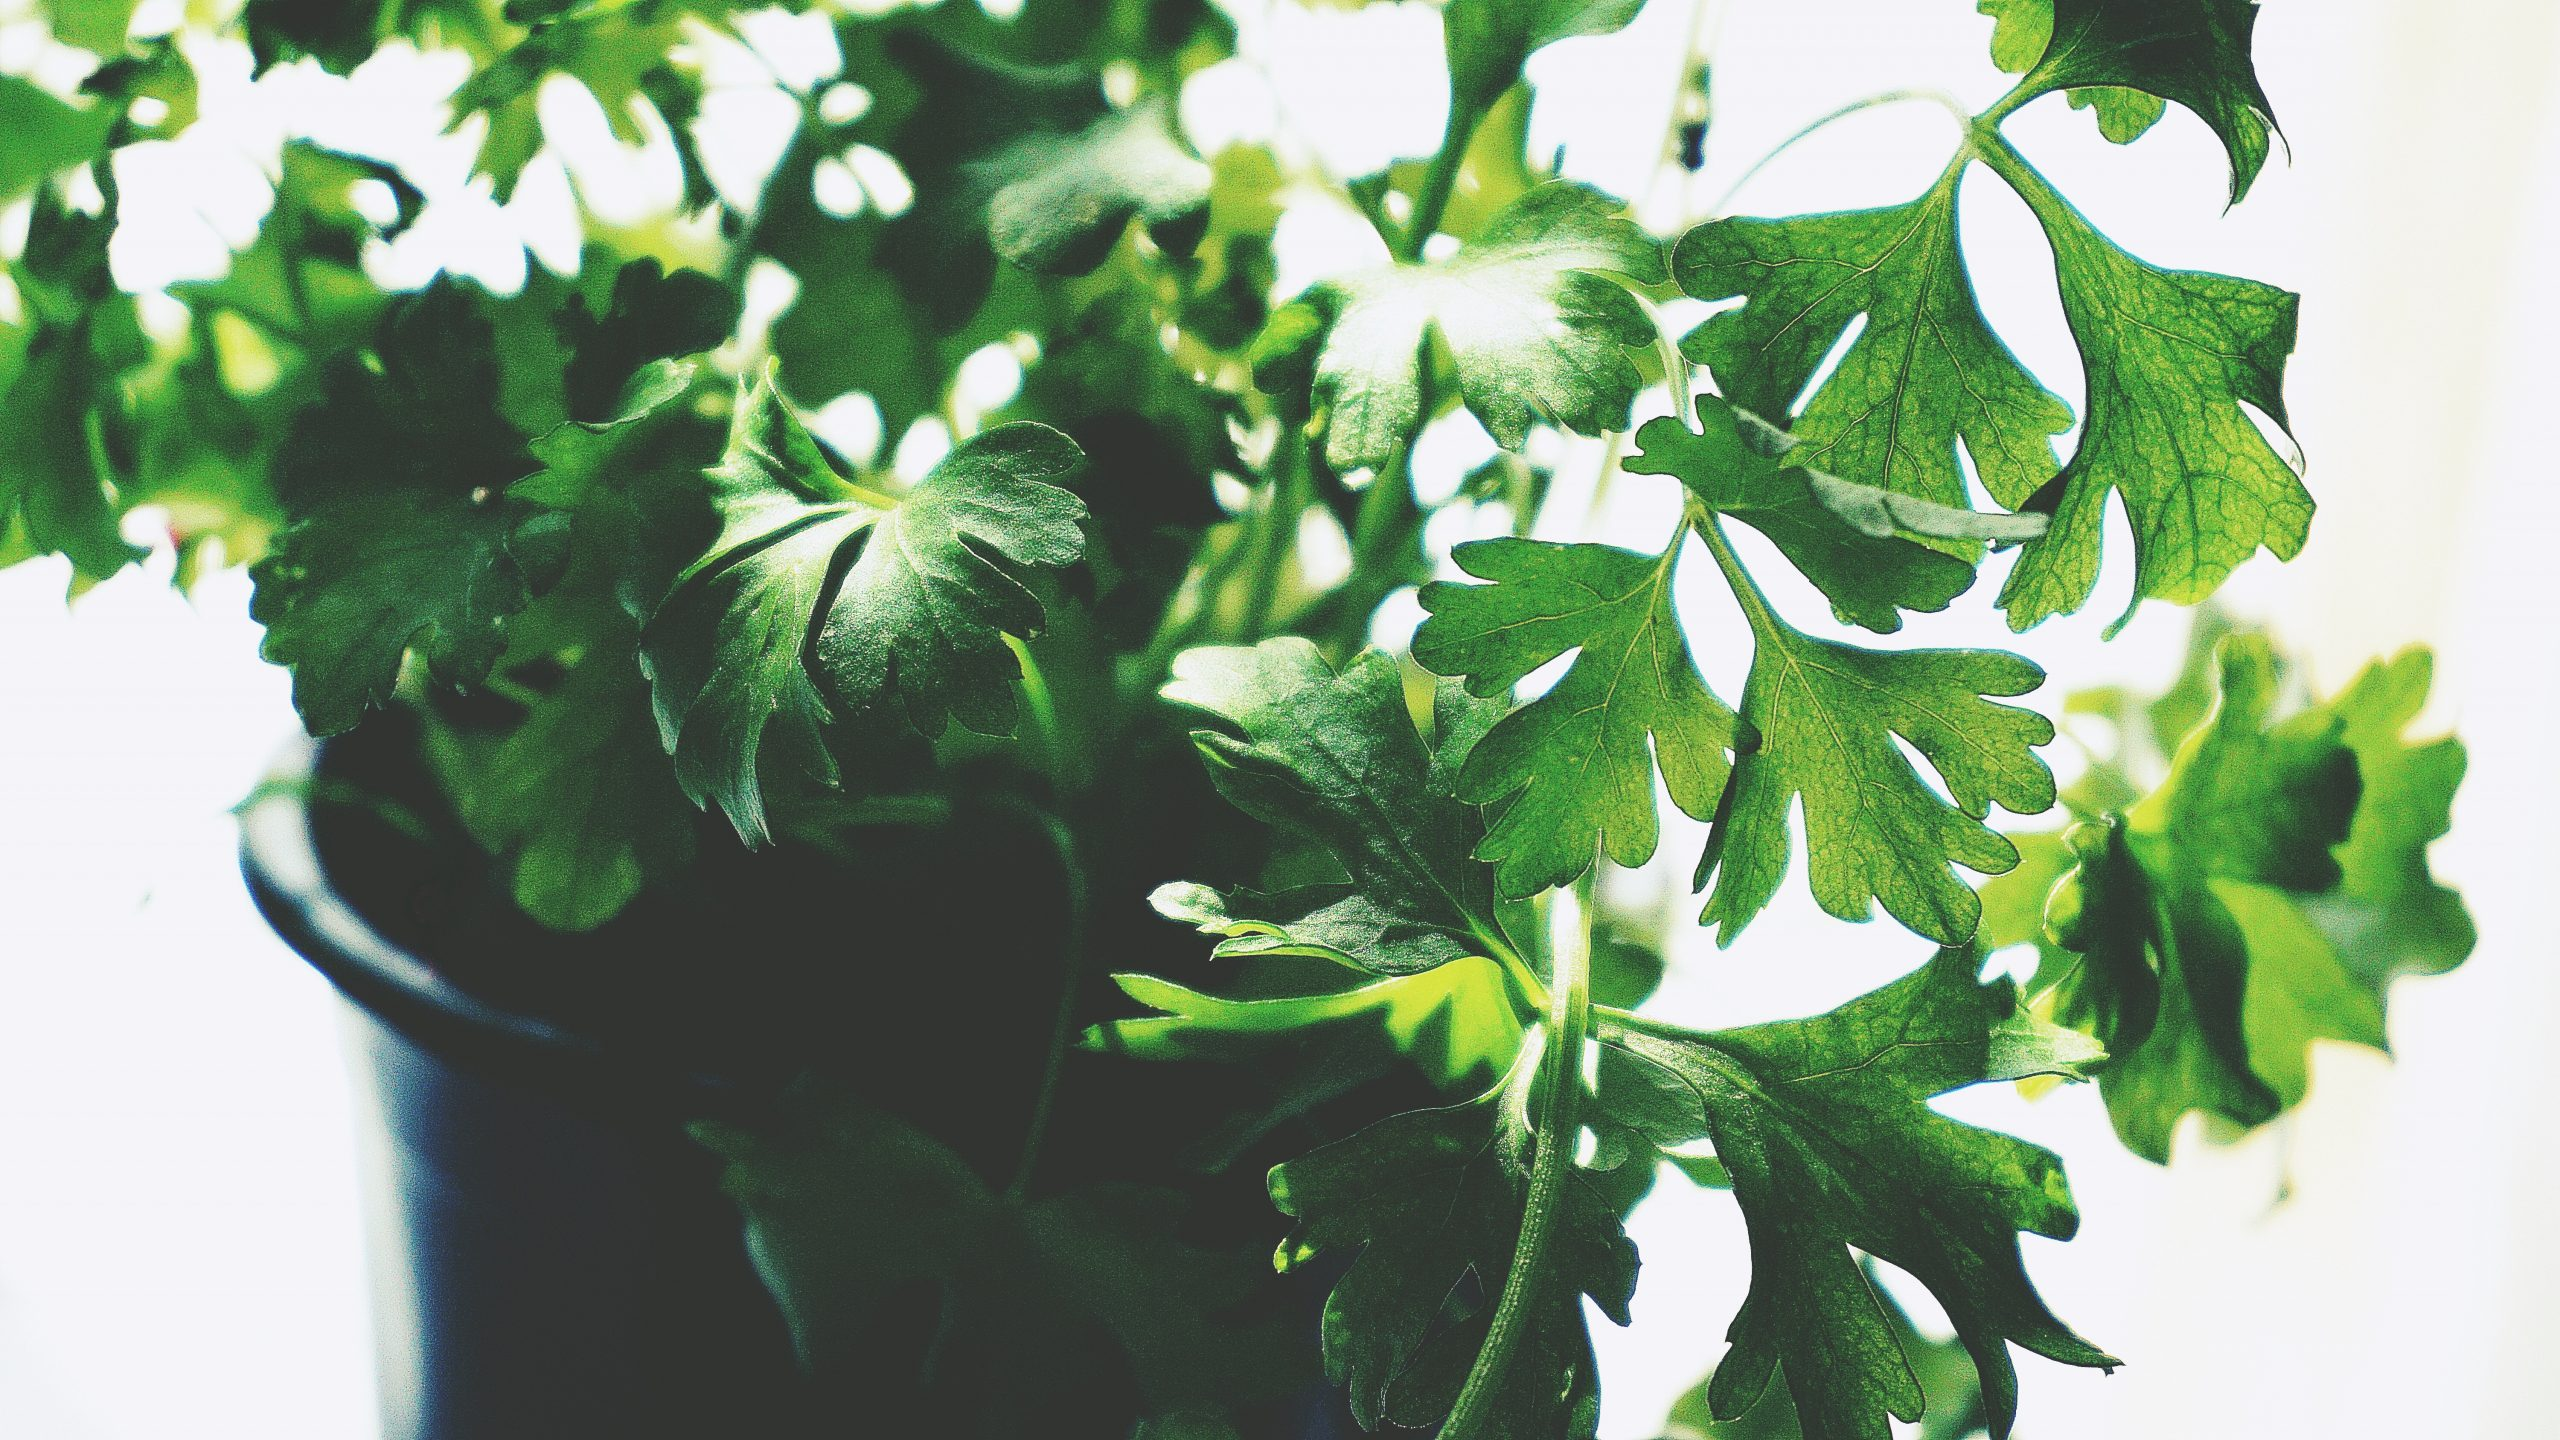 green-leafed-plant-1746410